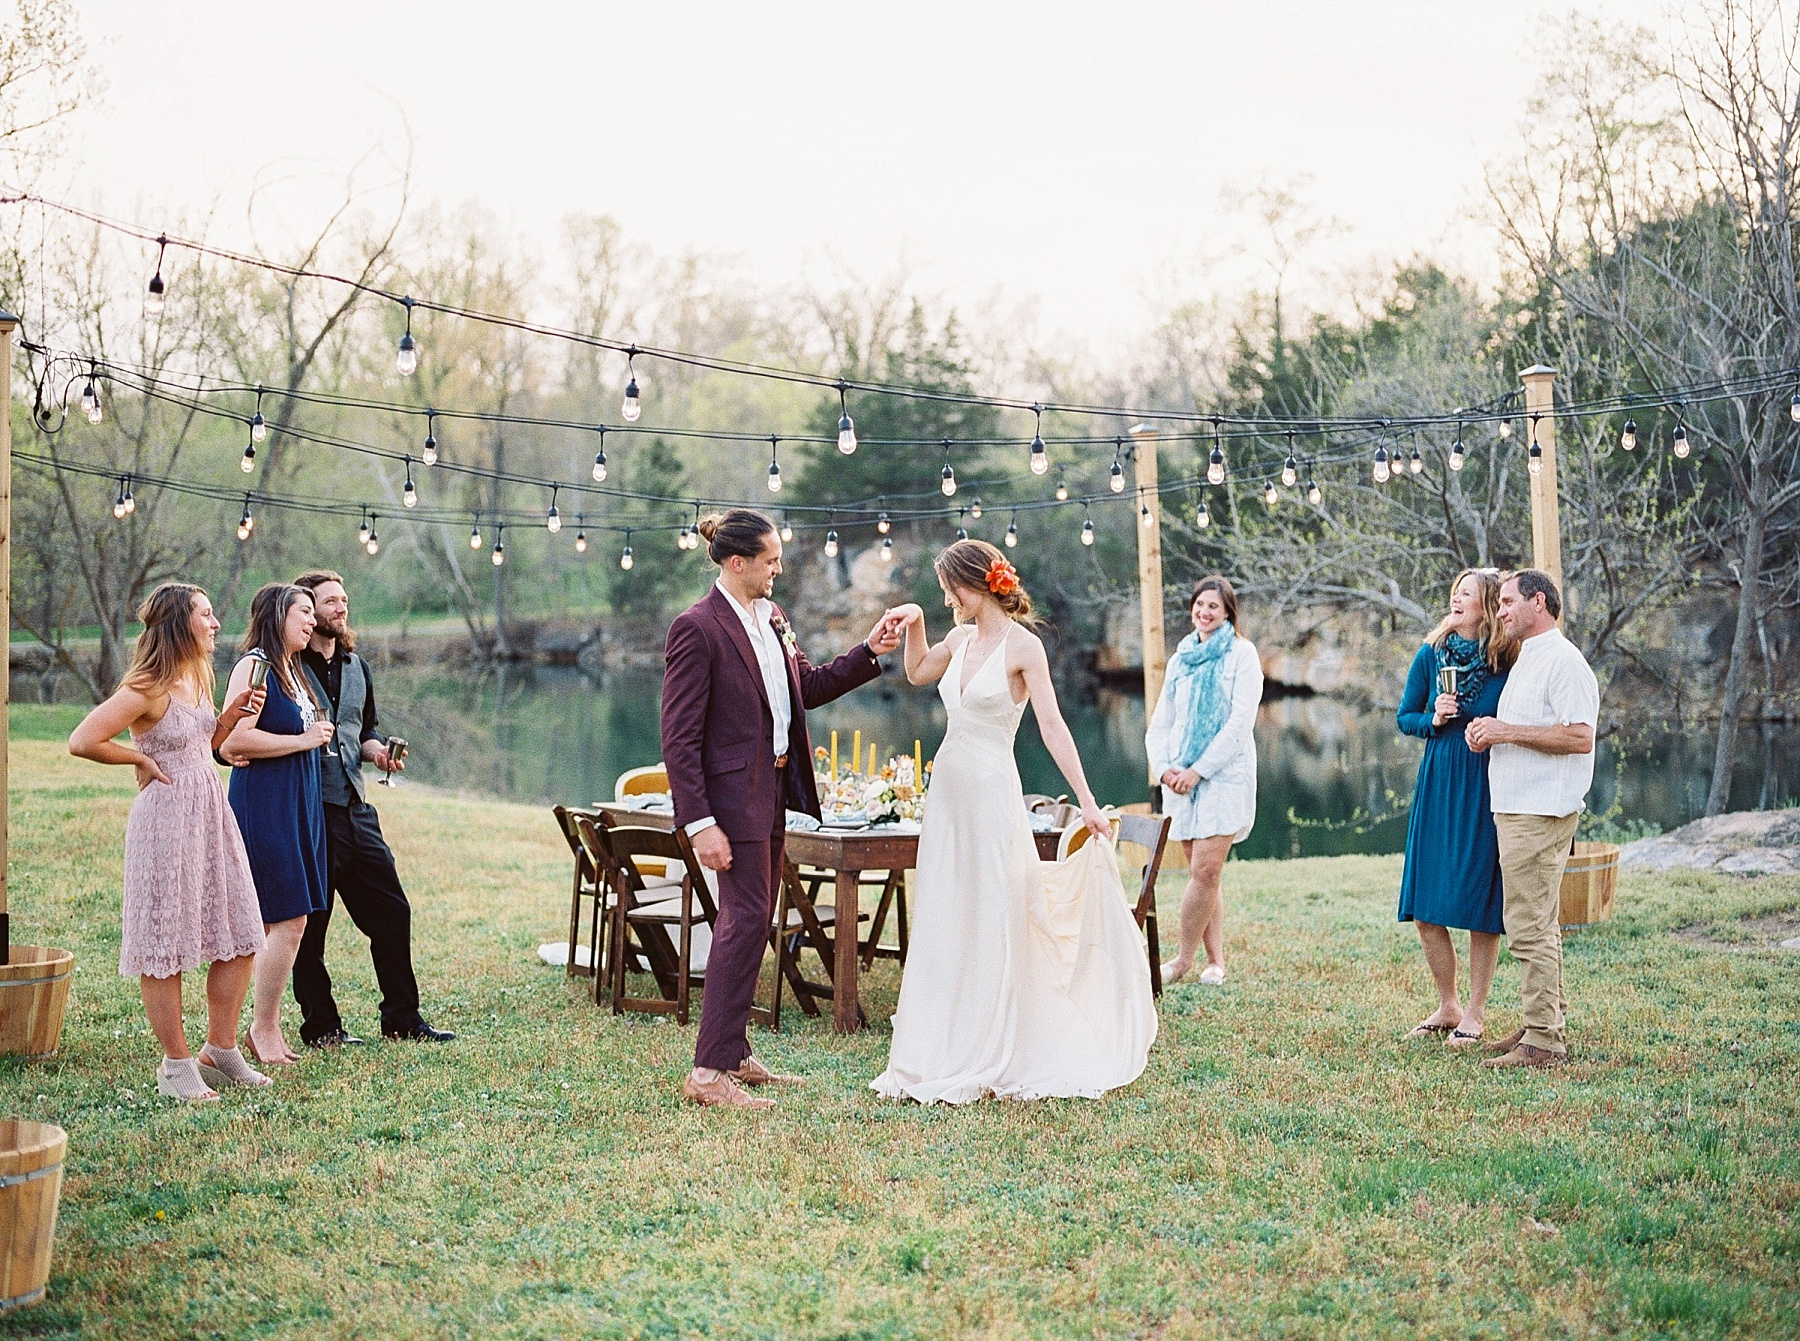 Intimate Spanish and French Inspired Destination Wedding with Lakeside Dinner Party at Dusk at Wildcliff by Kelsi Kliethermes Photography Best Missouri and Maui Wedding Photographer_0016.jpg